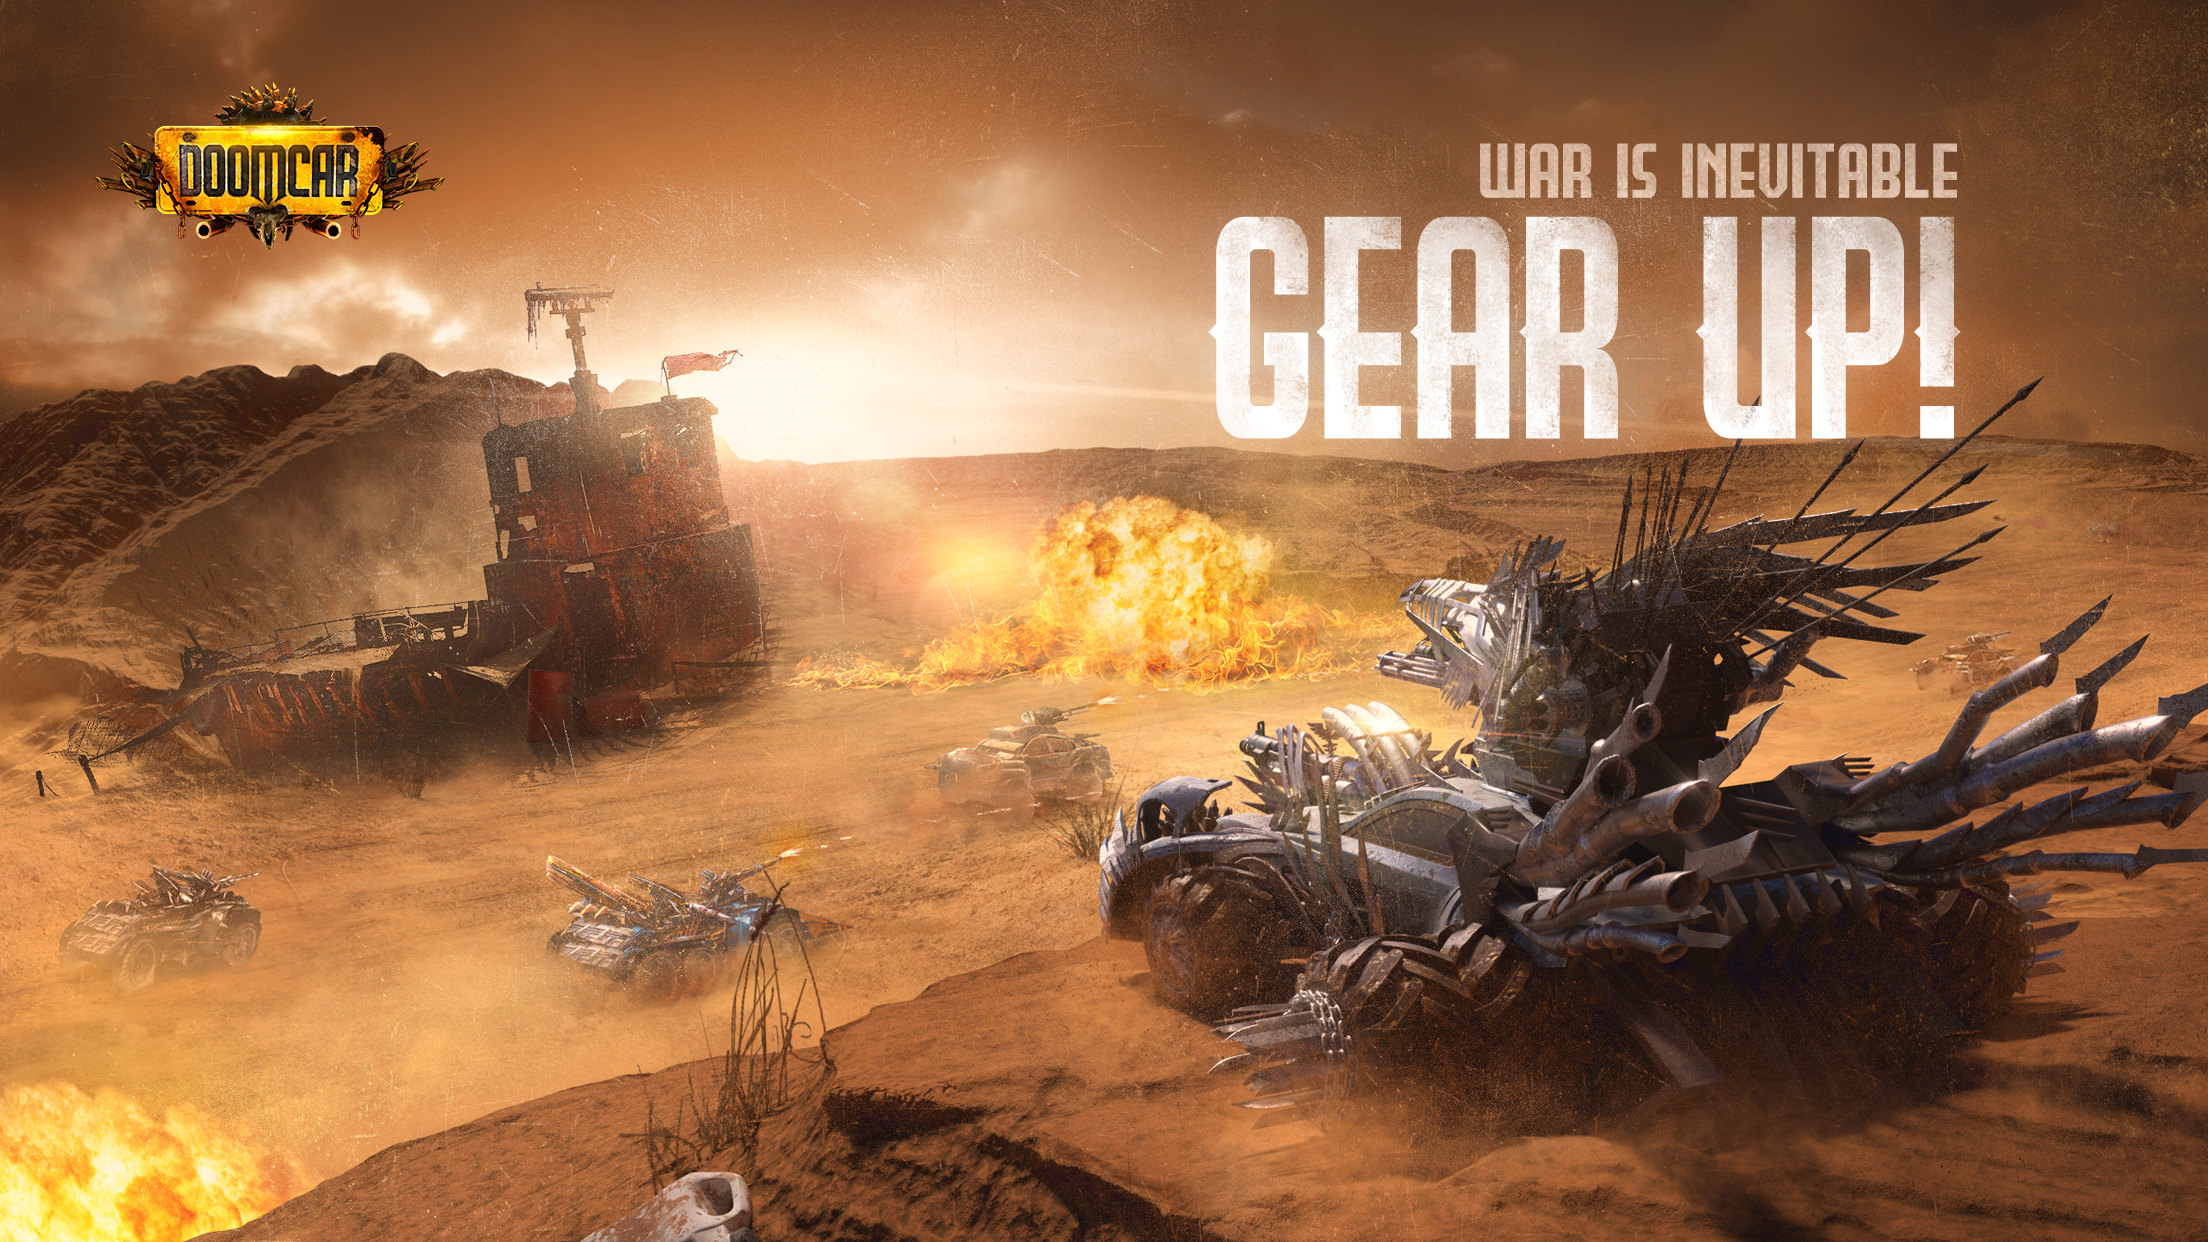 Post-Apocalyptic Strategy RPG 'DoomCar' Open for Pre-Registration Today